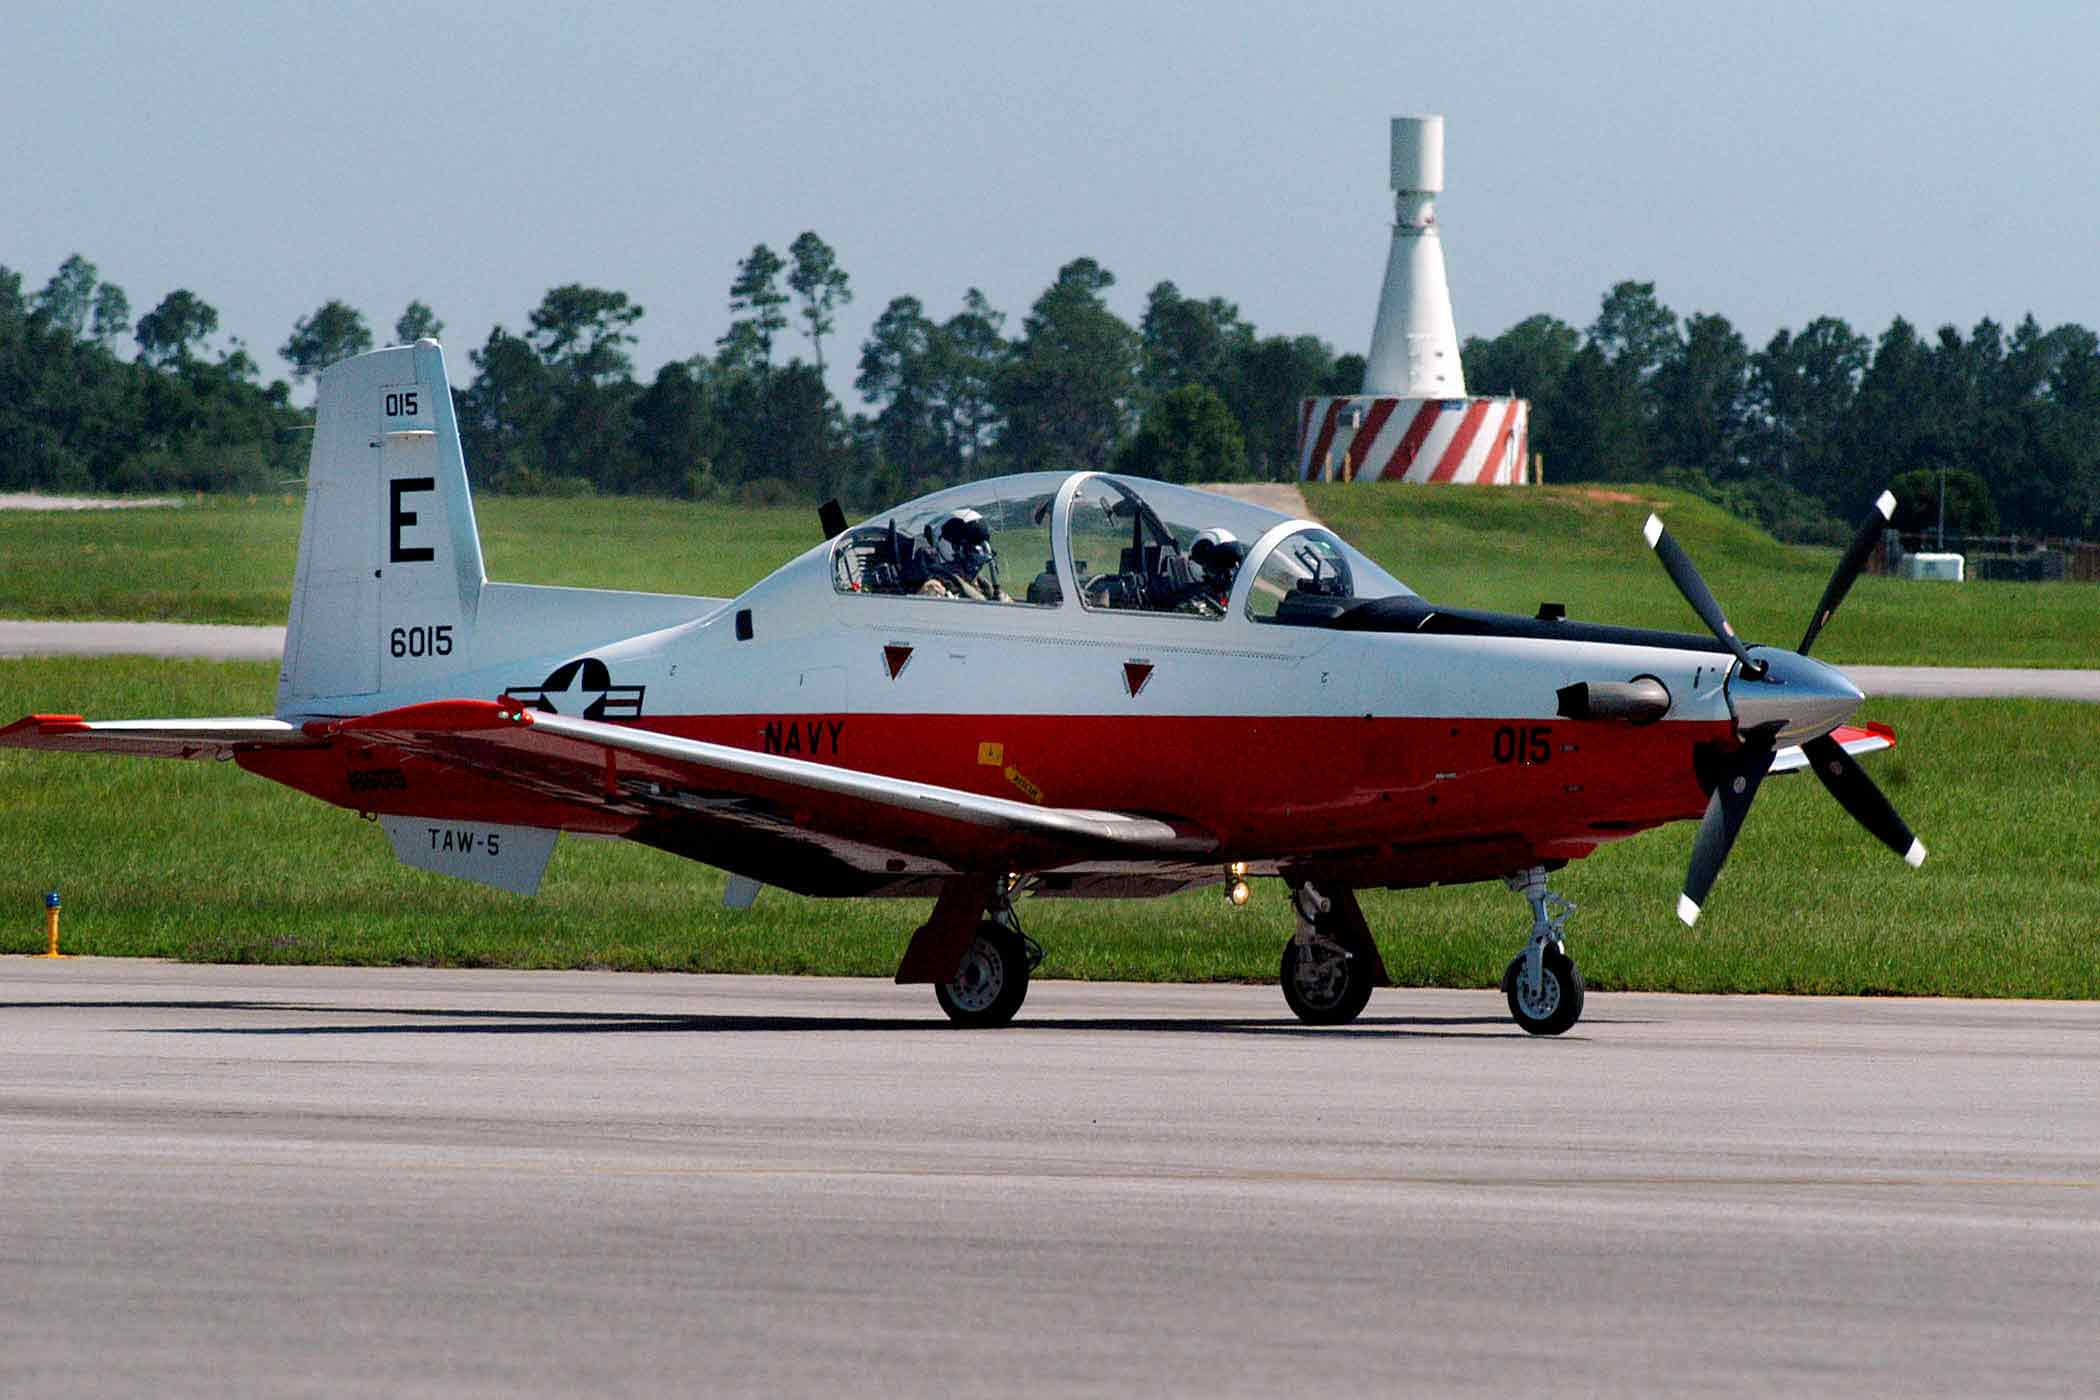 US Navy T-6B Texan II crashed into a heavily populated area for US Air Crash